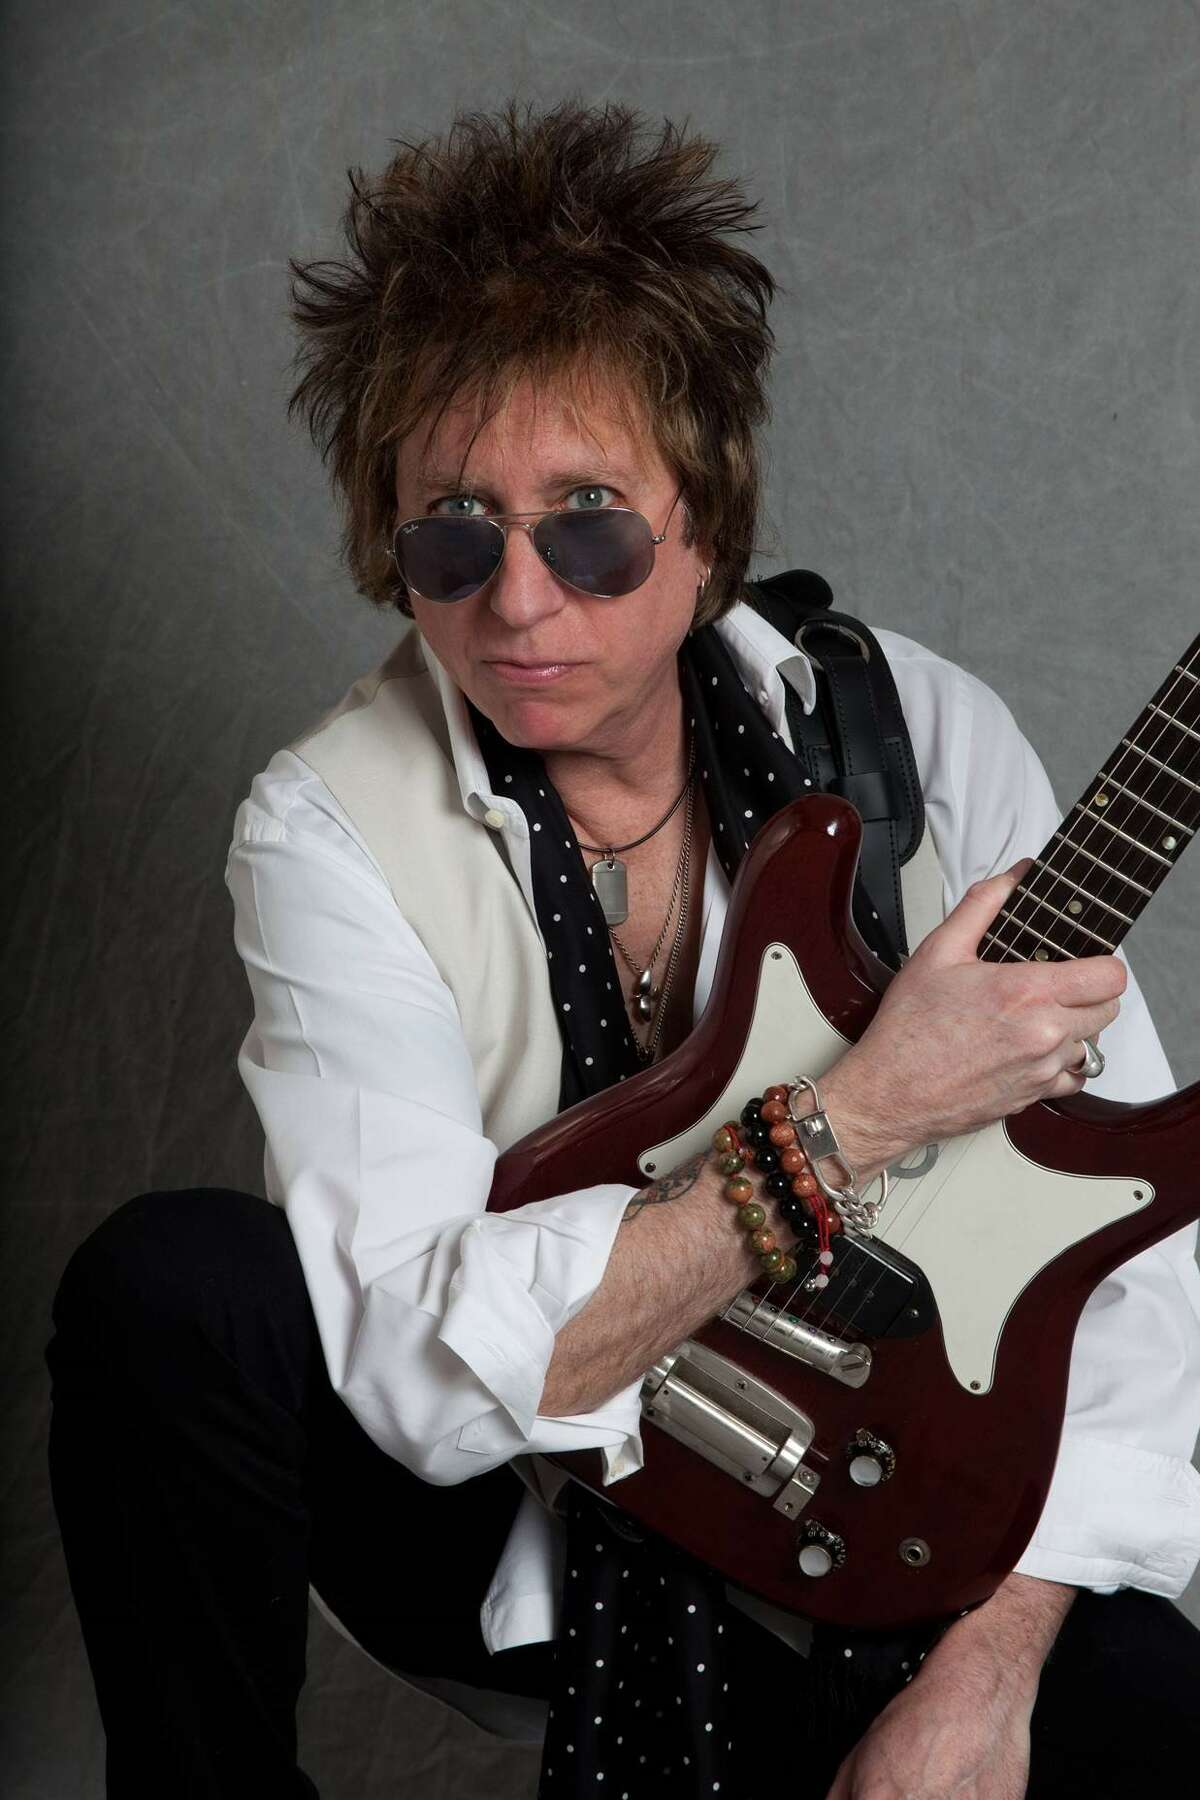 Ricky Byrd's Clean Getaway All Stars will perform at the Warner Theatre in Torrington on Saturday, Sept. 19.